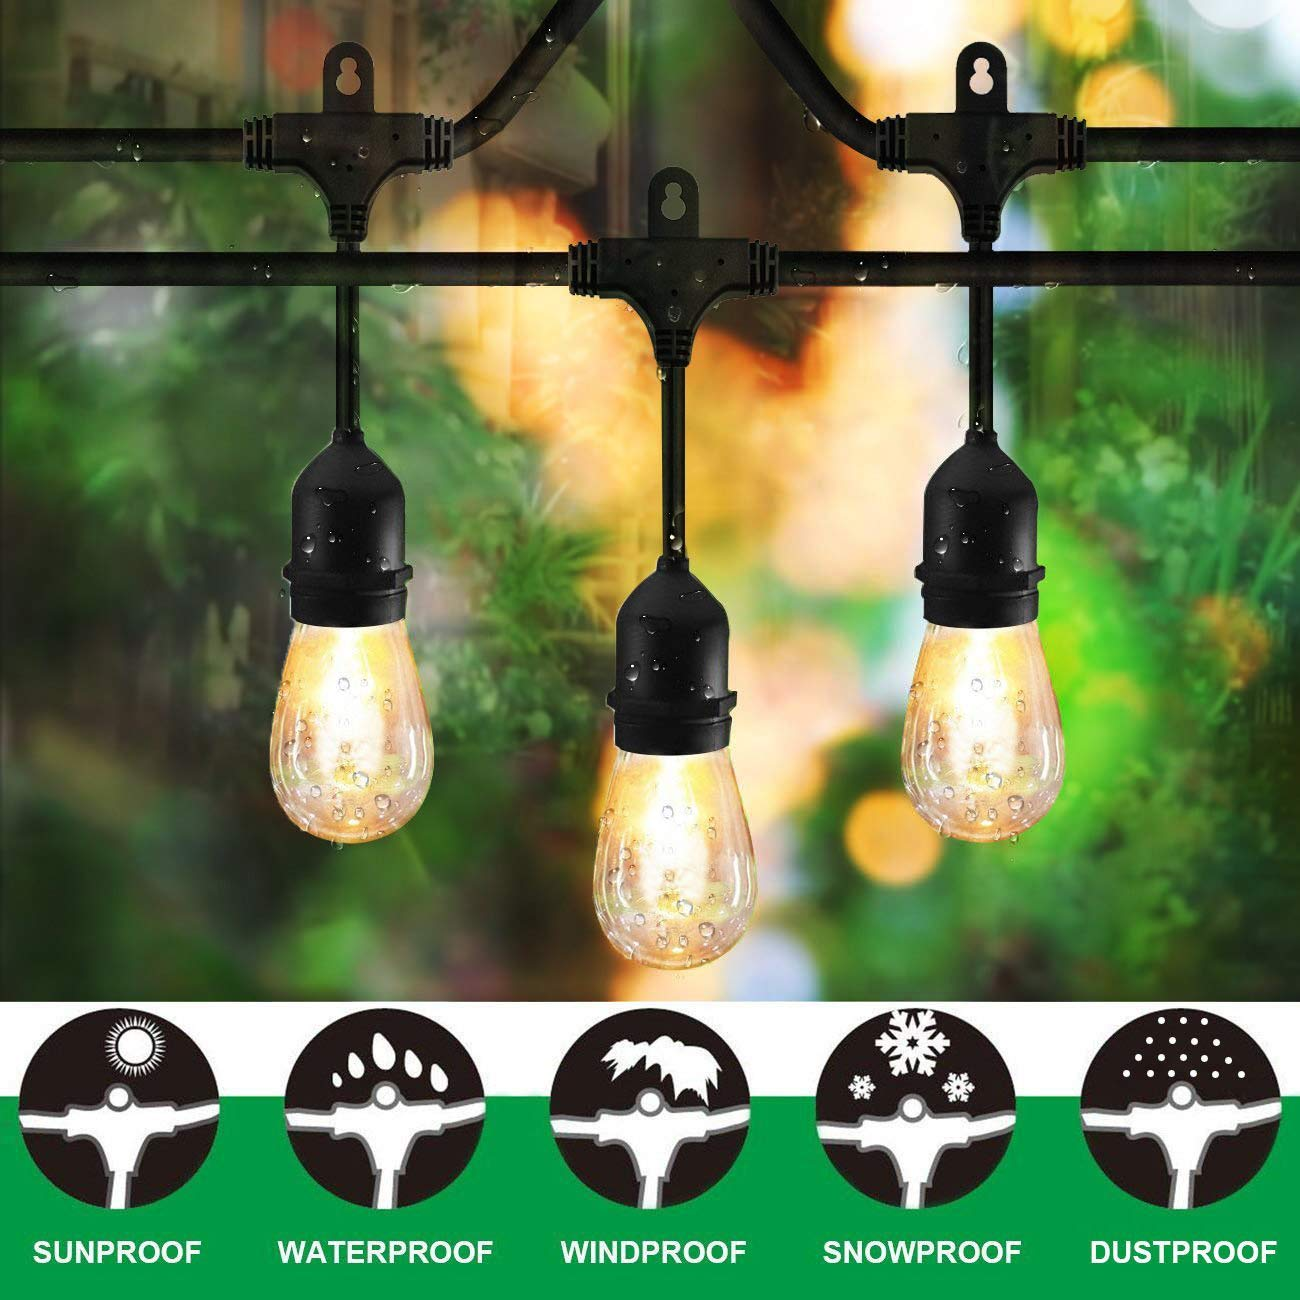 Classyke 48FT Outdoor String Lights for Patio Garden Yard Deck Cafe Dimmable Waterproof Commercial Grade 18 Incandescent Bulbs (3 Spare) by Classyke